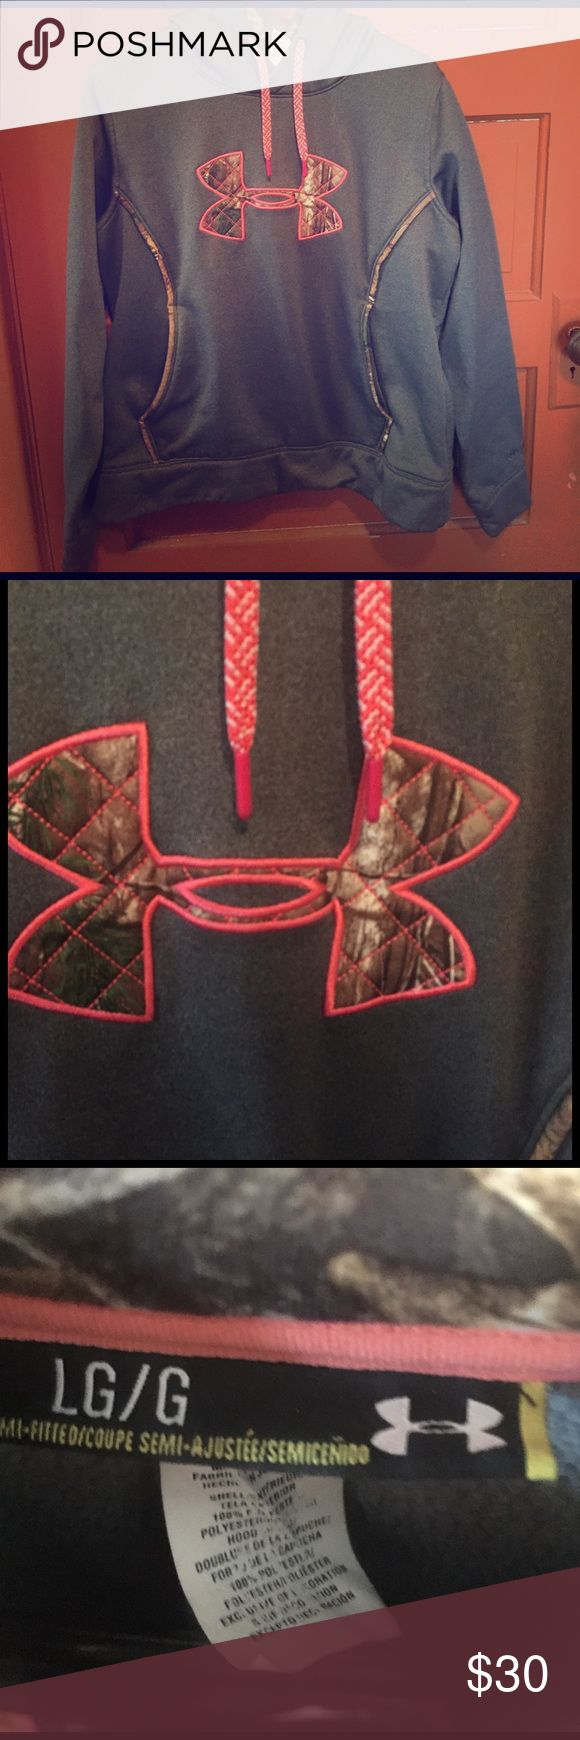 Under armor hoodie This hoodie is under armor and its is a size LG/G it  has not wear to it only worn one or two times. The symbol is pink with camouflage and in the hood its also camouflage Under Armour Sweaters